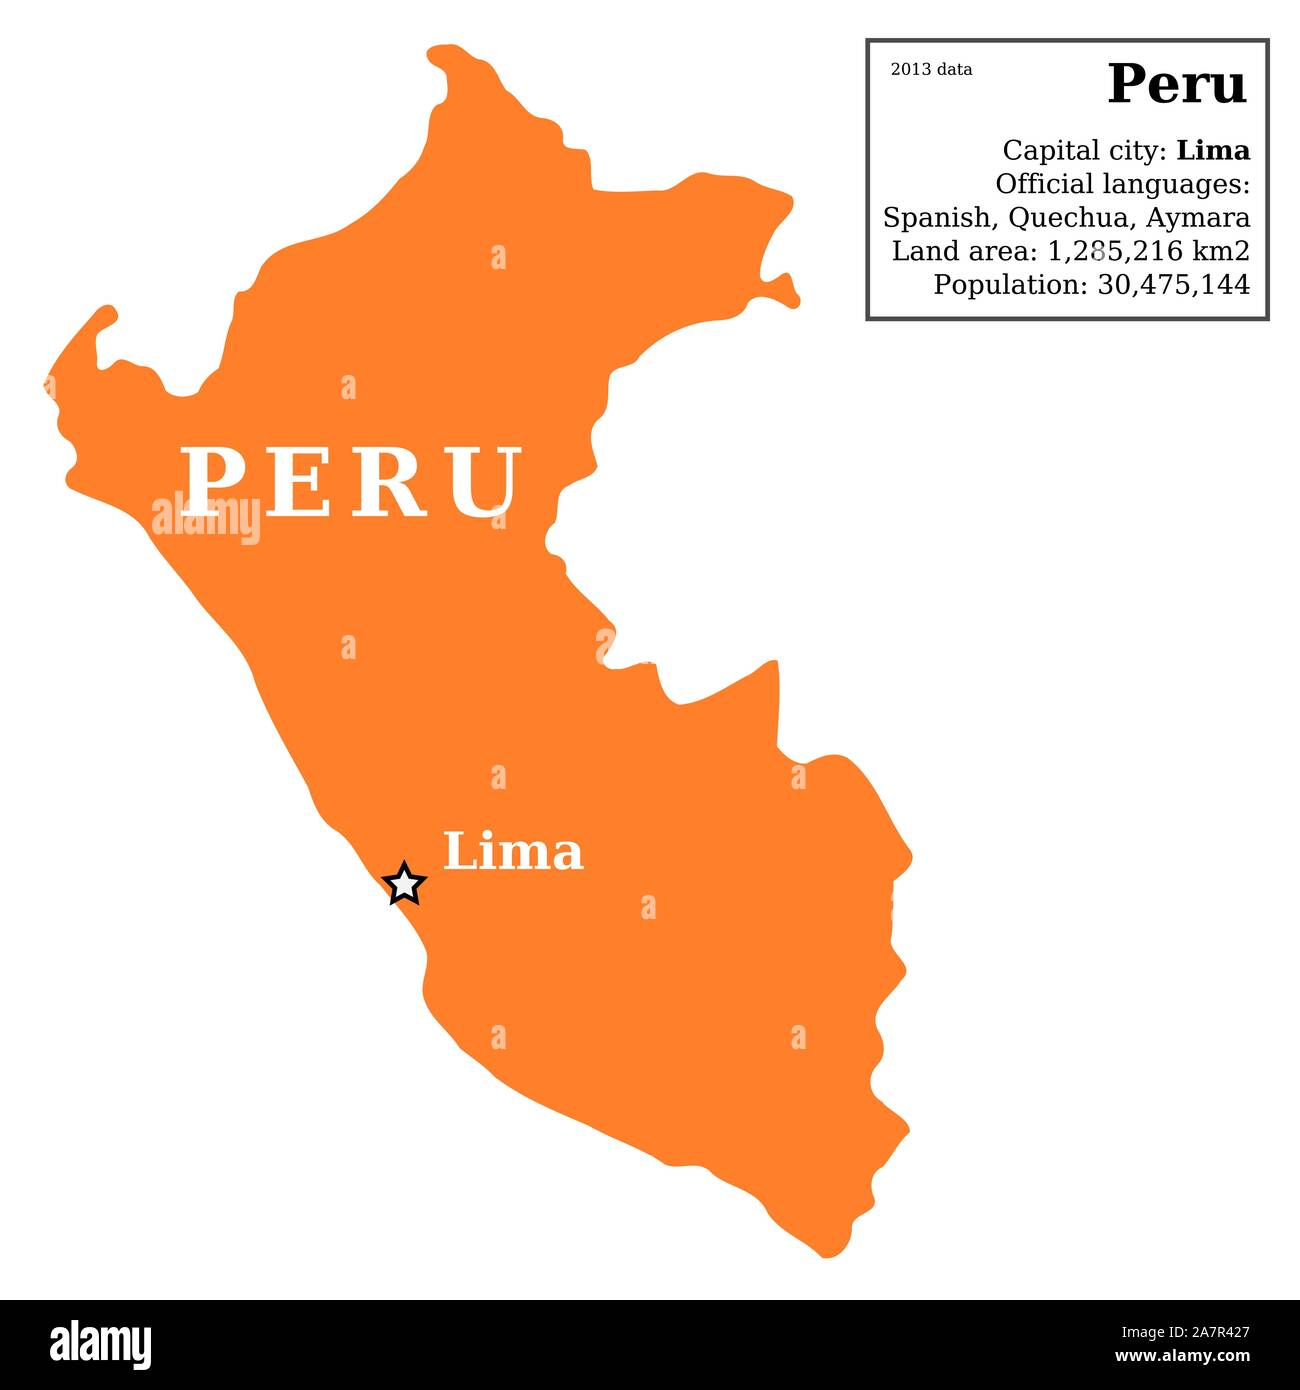 Map Of Peru Country Outline With Information Box Stock Vector Image Art Alamy